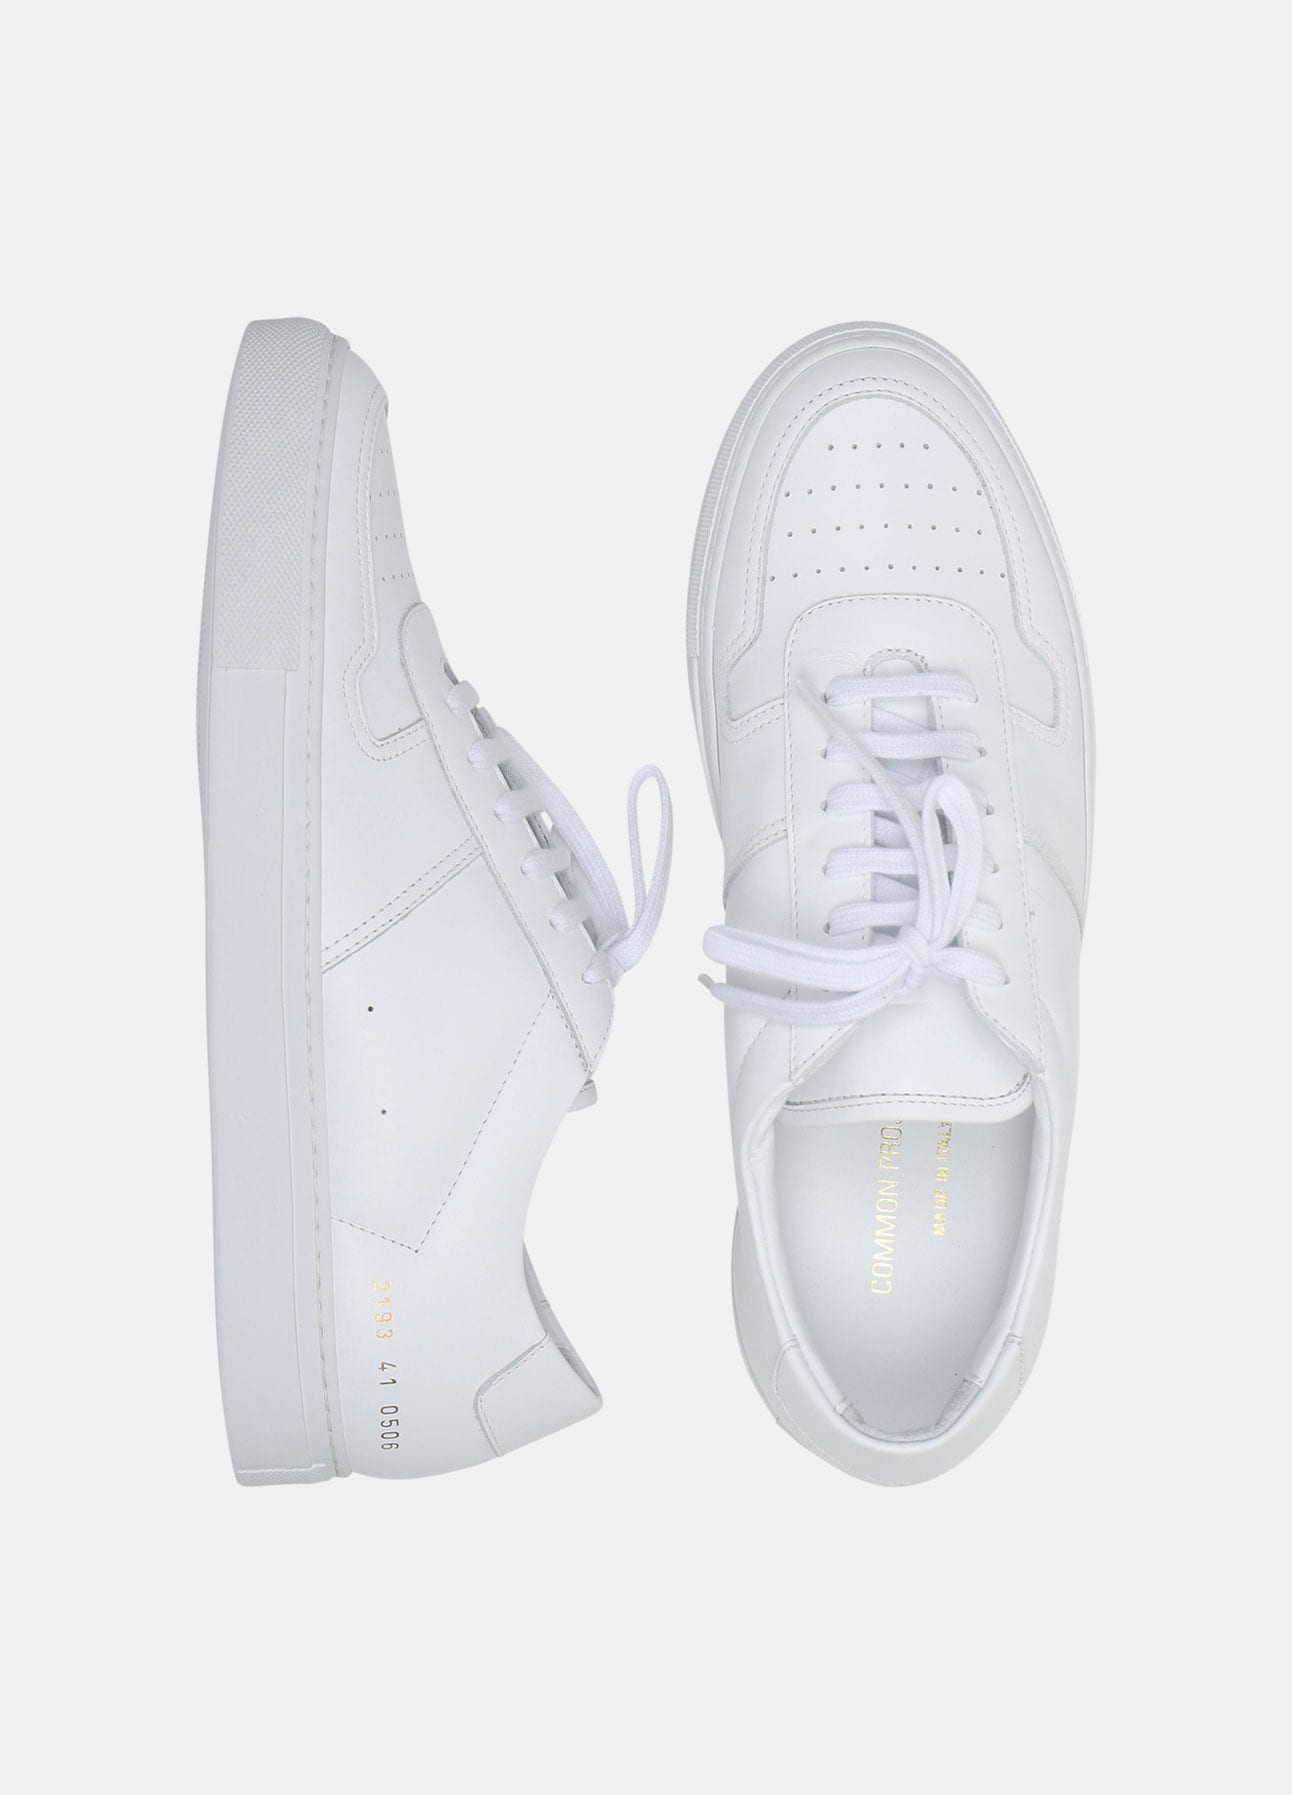 hvid b ball low sneakers fra common projects